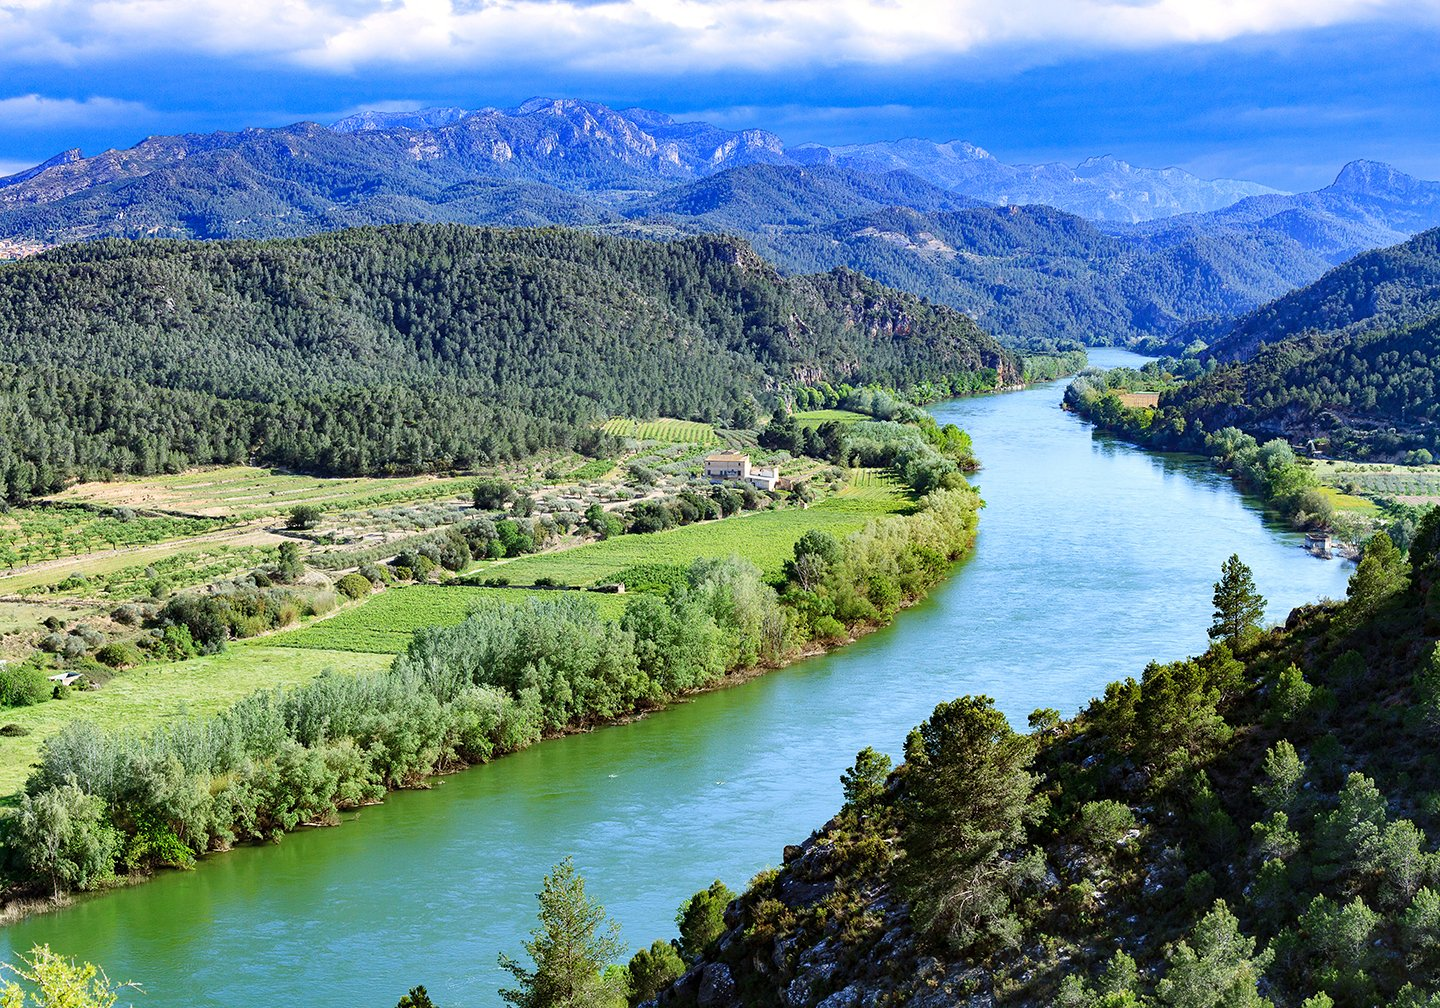 The Ebro River in Spain, with green fields on either side and blue mountains in the distance